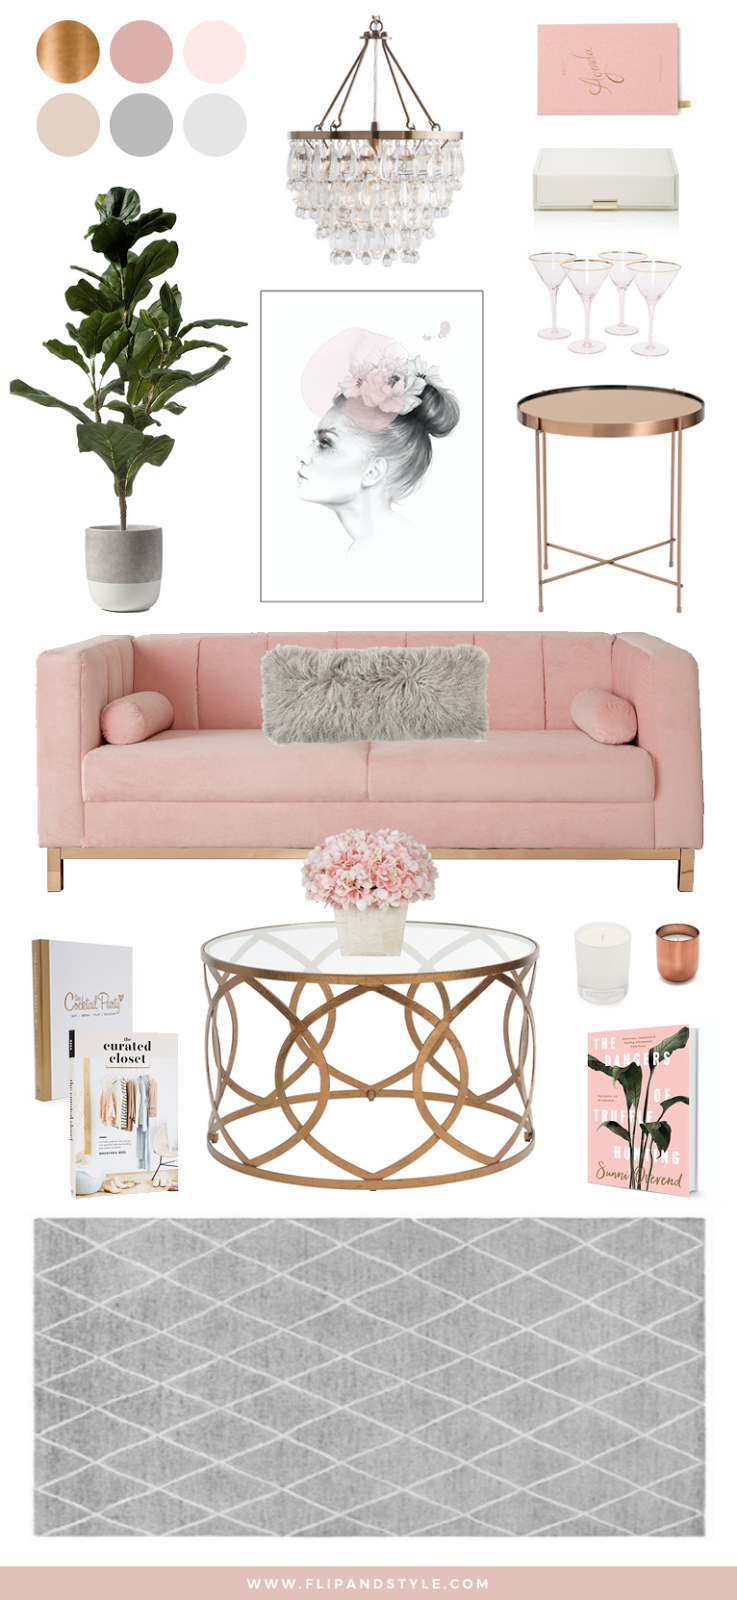 Blush, Copper + Grey Home Decor | Interior inspiration, Living ...